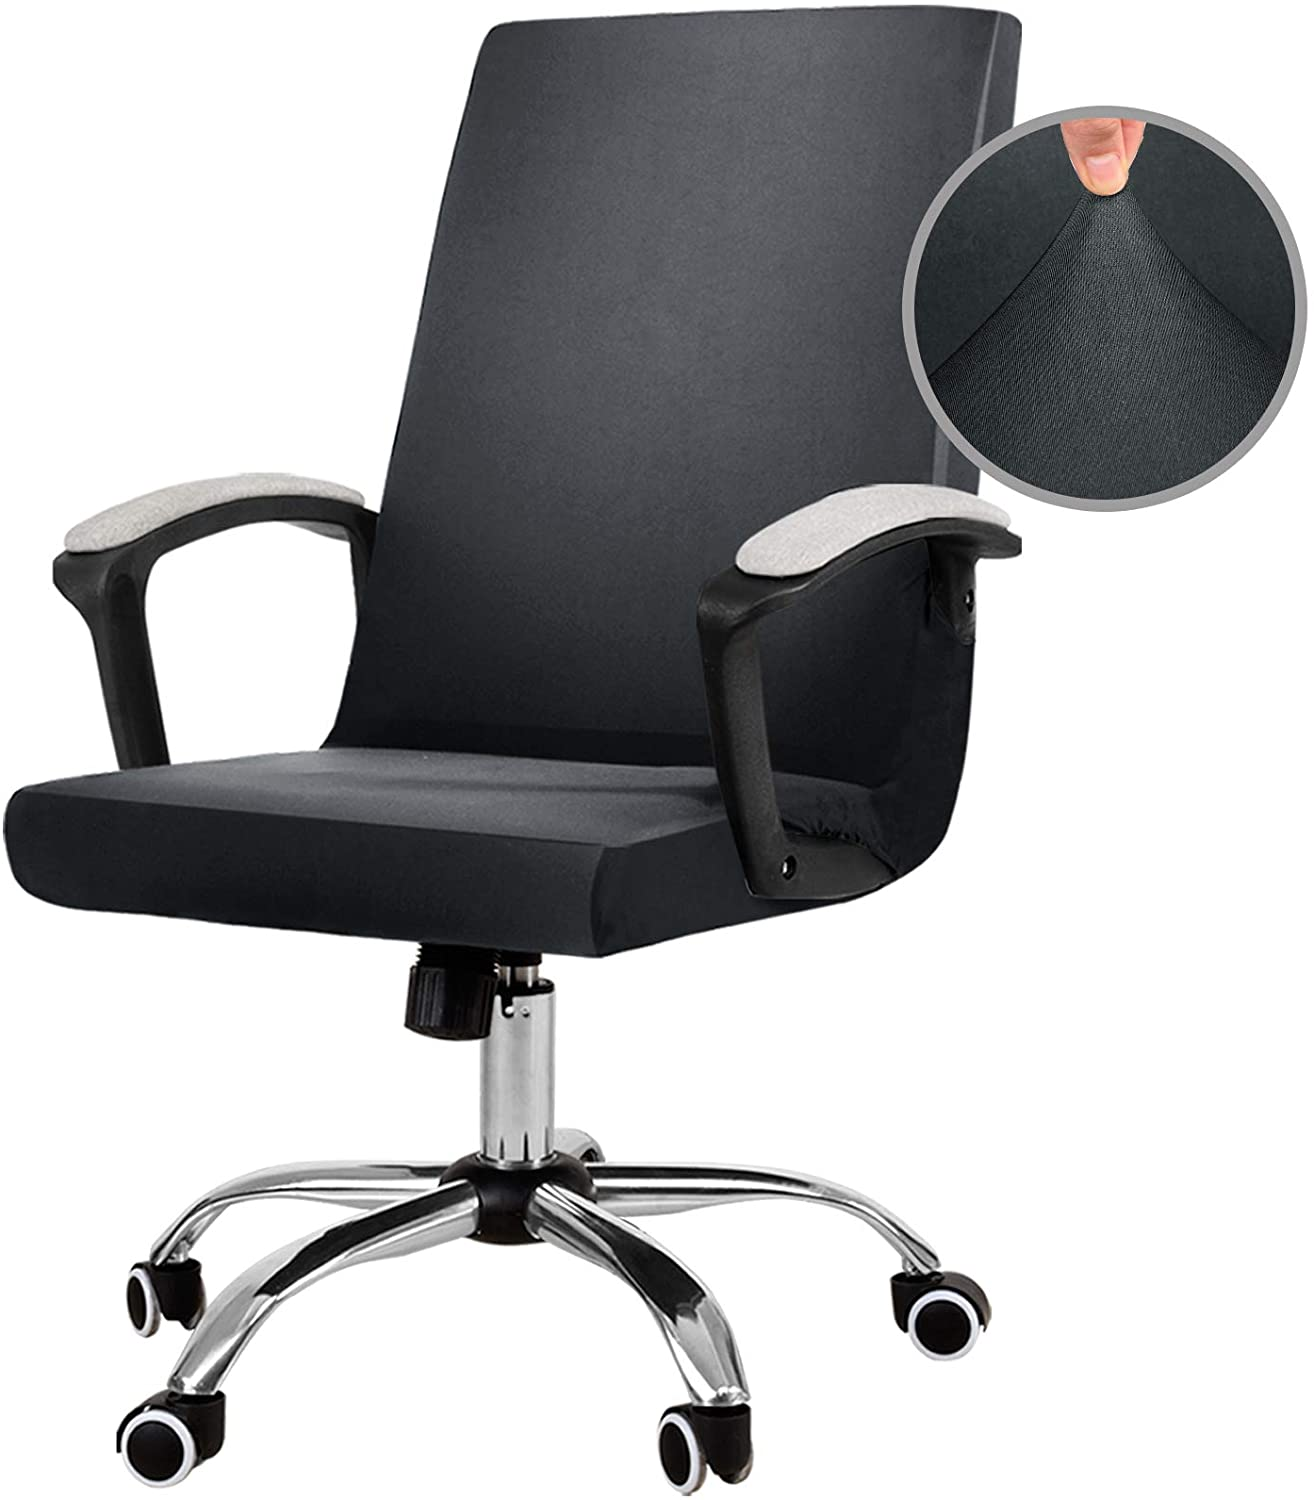 JIATER Stretchable Office Chair Cover